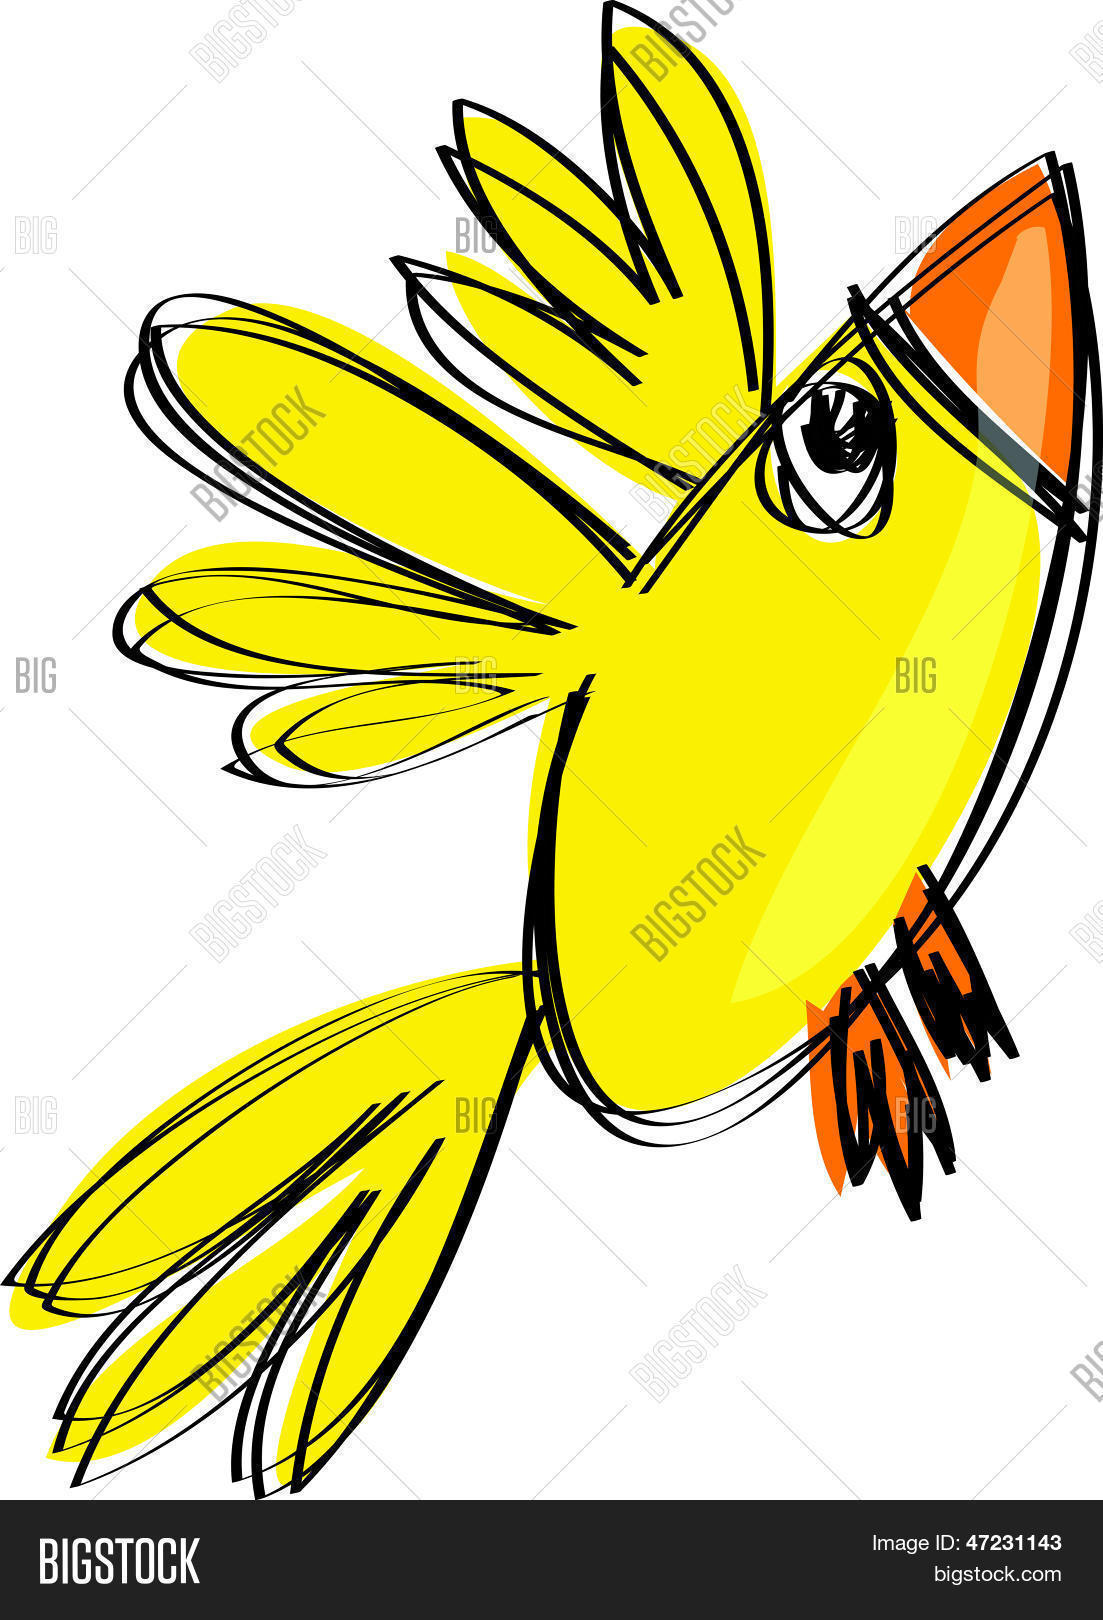 animal,art,artistic,baby,background,bird,caricature,cartoon,character,child,childhood,childish,childishness,children,clip,clipart,cool,cute,doodle,drawing,flying,friendly,fun,funny,graphic,humor,illustration,image,isolated,kid,little,mascot,naif,no,simple,sketch,small,smiling,sweet,tiny,vector,yellow